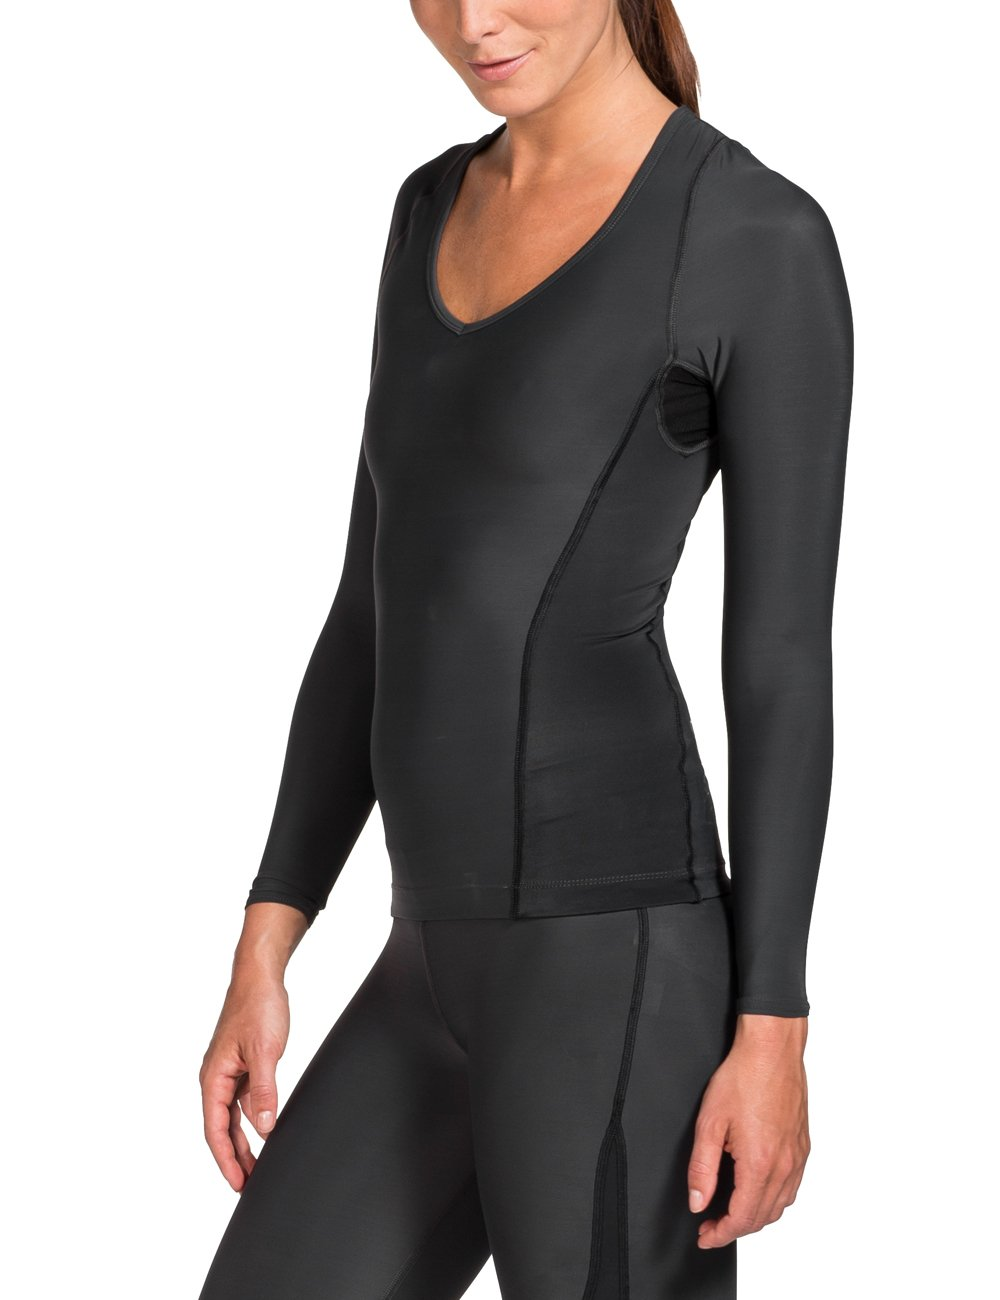 Skins Women's Ry400 Recovery Long Sleeve Top, Black, SmallH by Skins (Image #4)